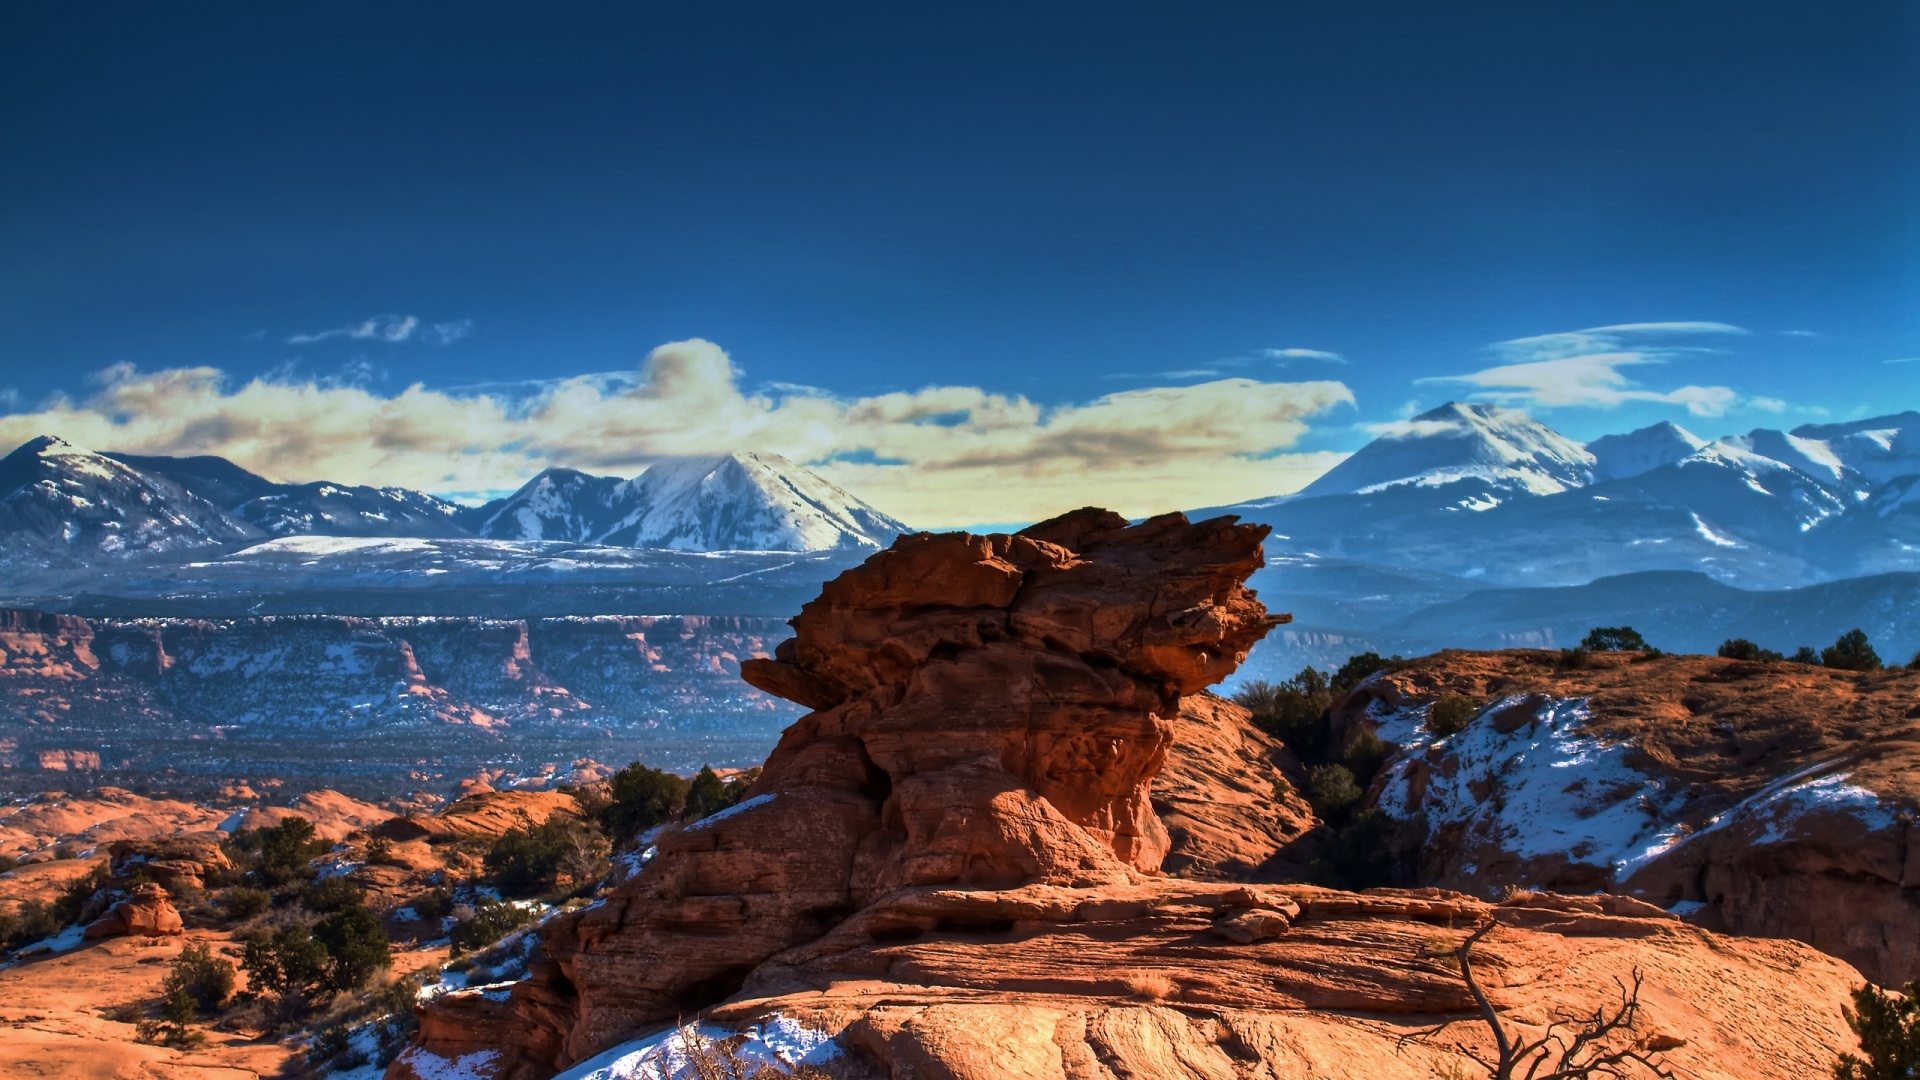 Moab Utah Mountains - High Definition Wallpapers - HD wallpapers